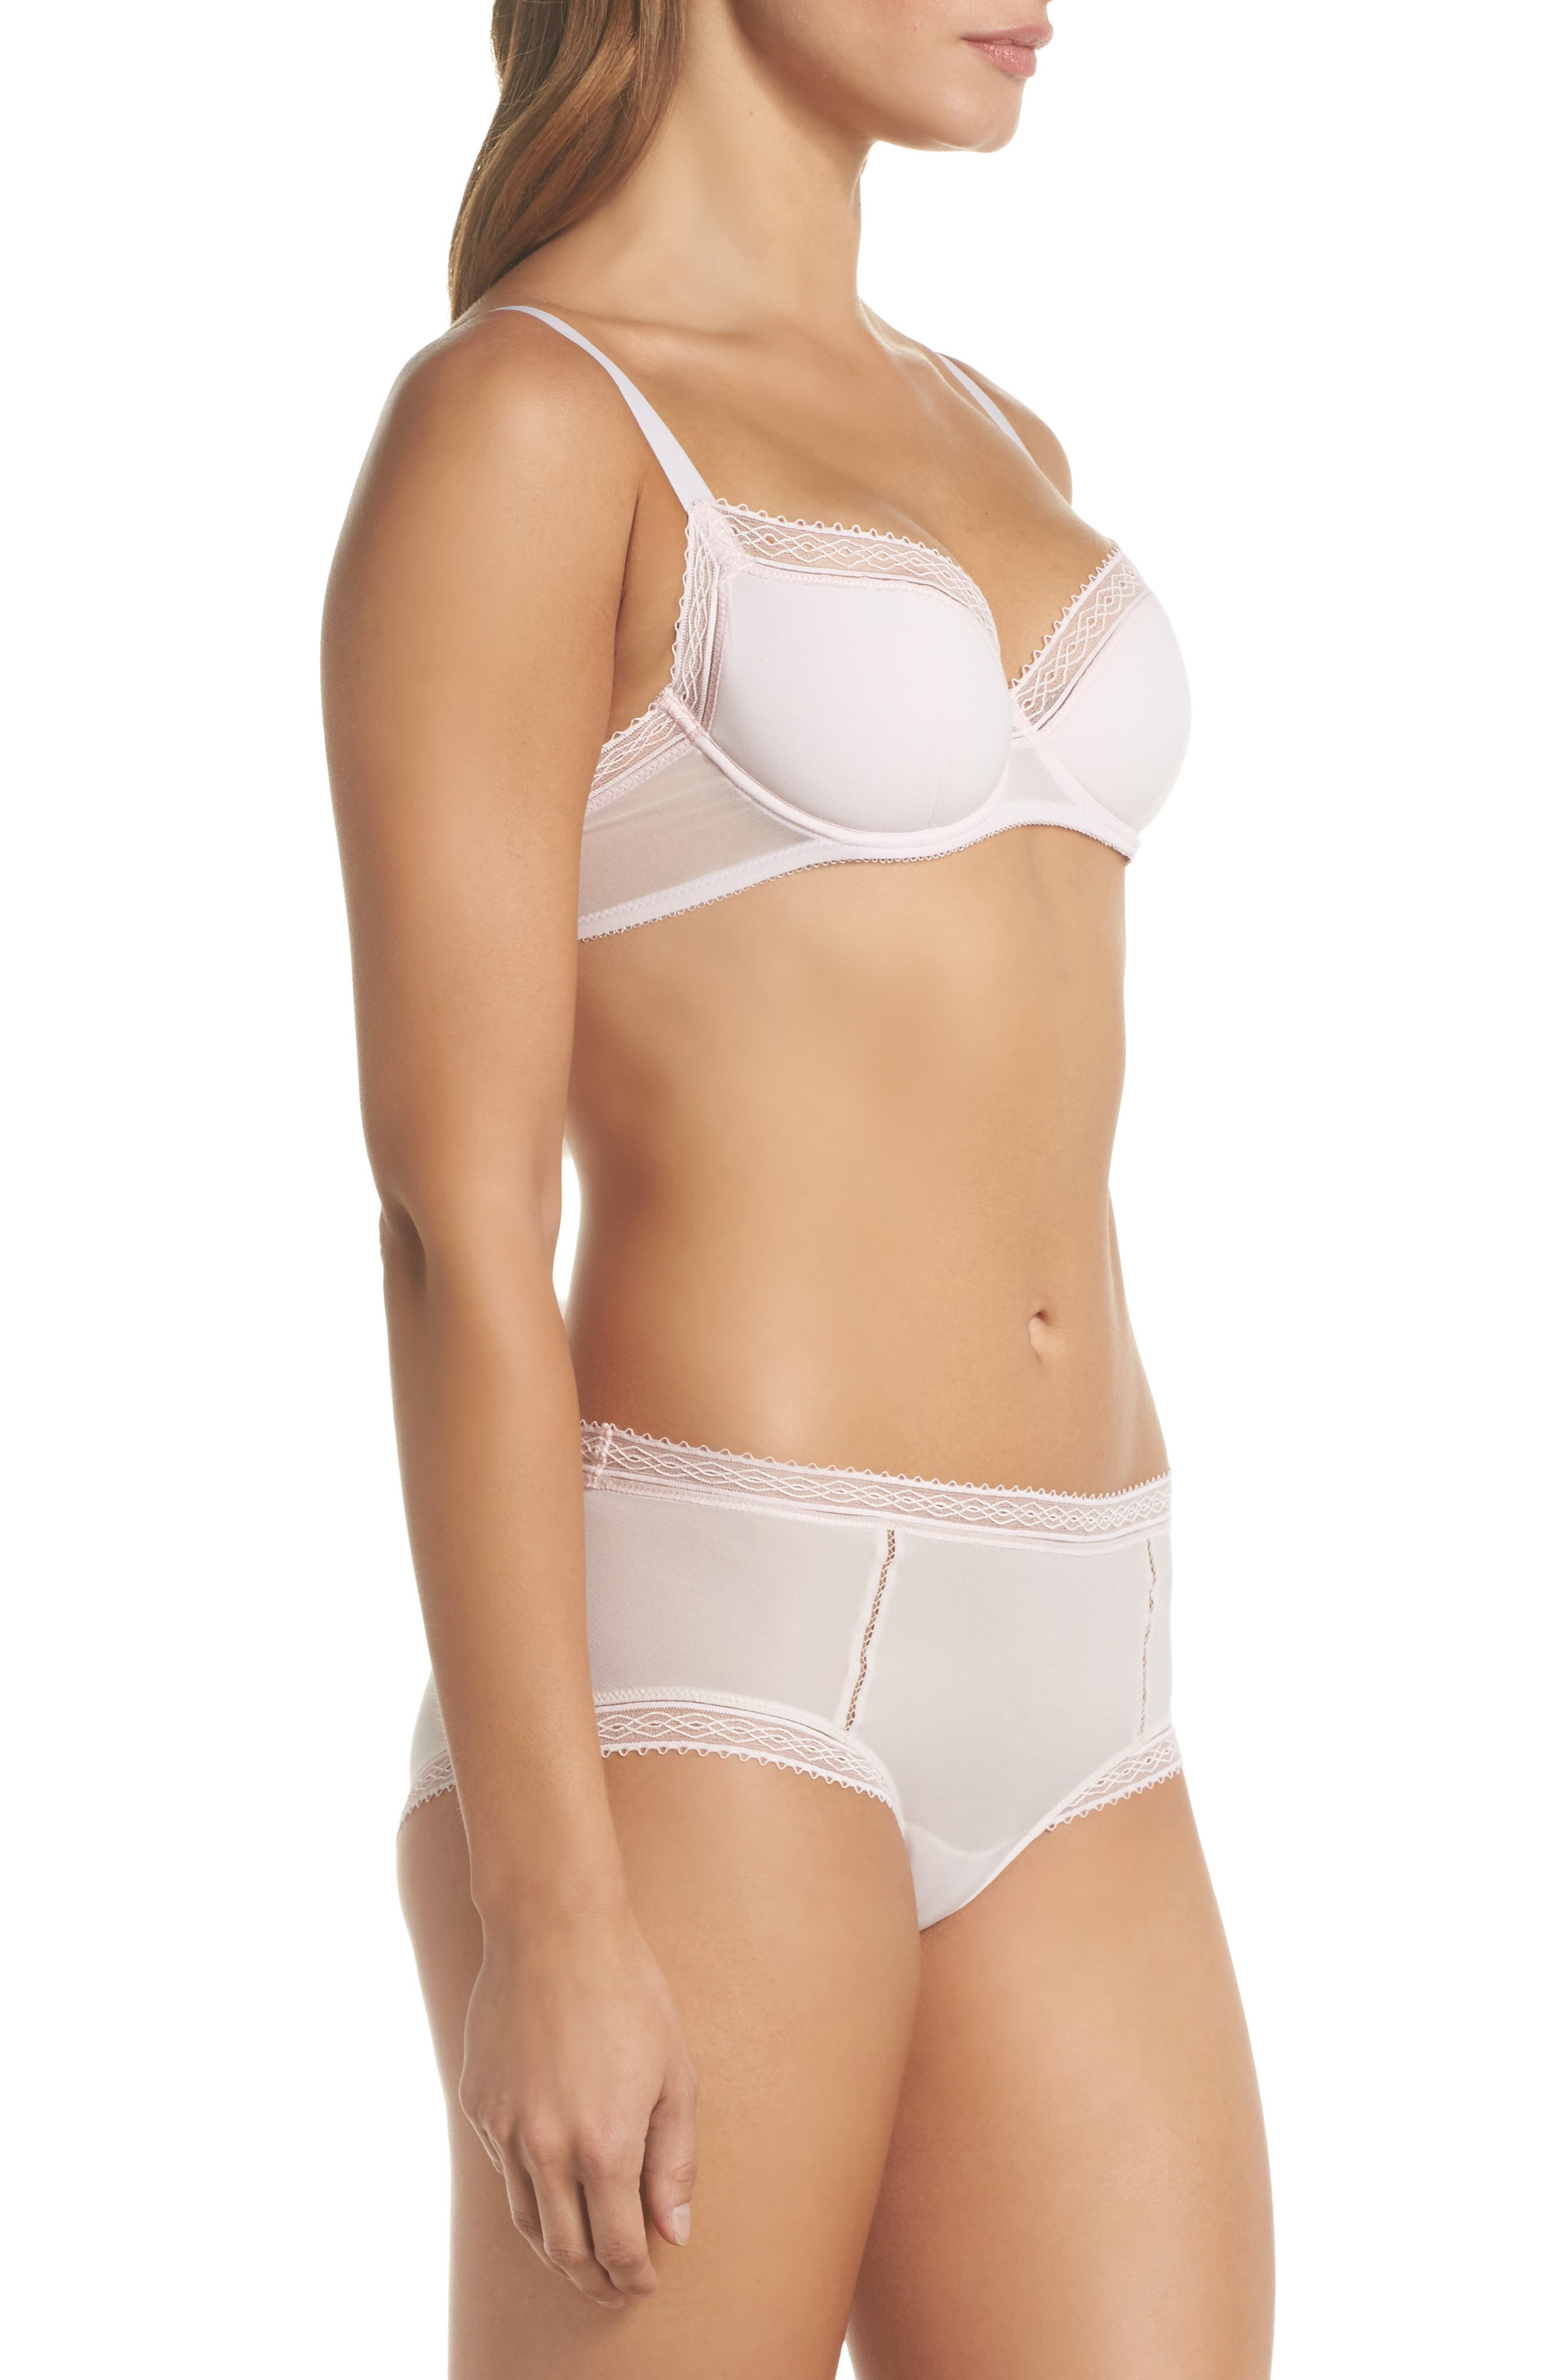 Tentation Douceur Padded Underwire Demi Bra,                             Alternate thumbnail 8, color,                             650